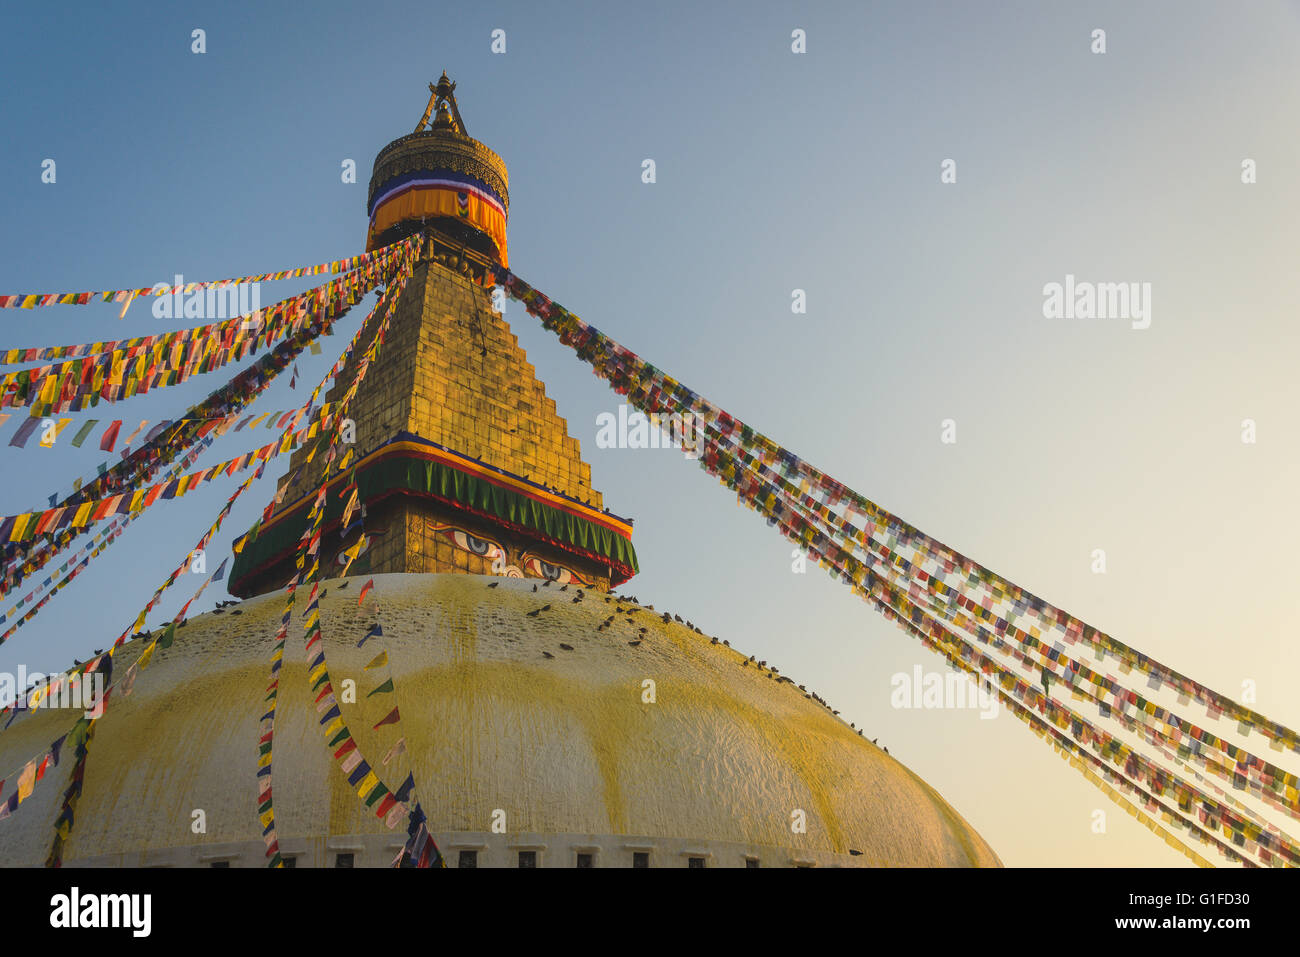 Boudhanath Stupa with hundreds of Pigeons and Prayer flags in Kathmandu, Nepal - Stock Image